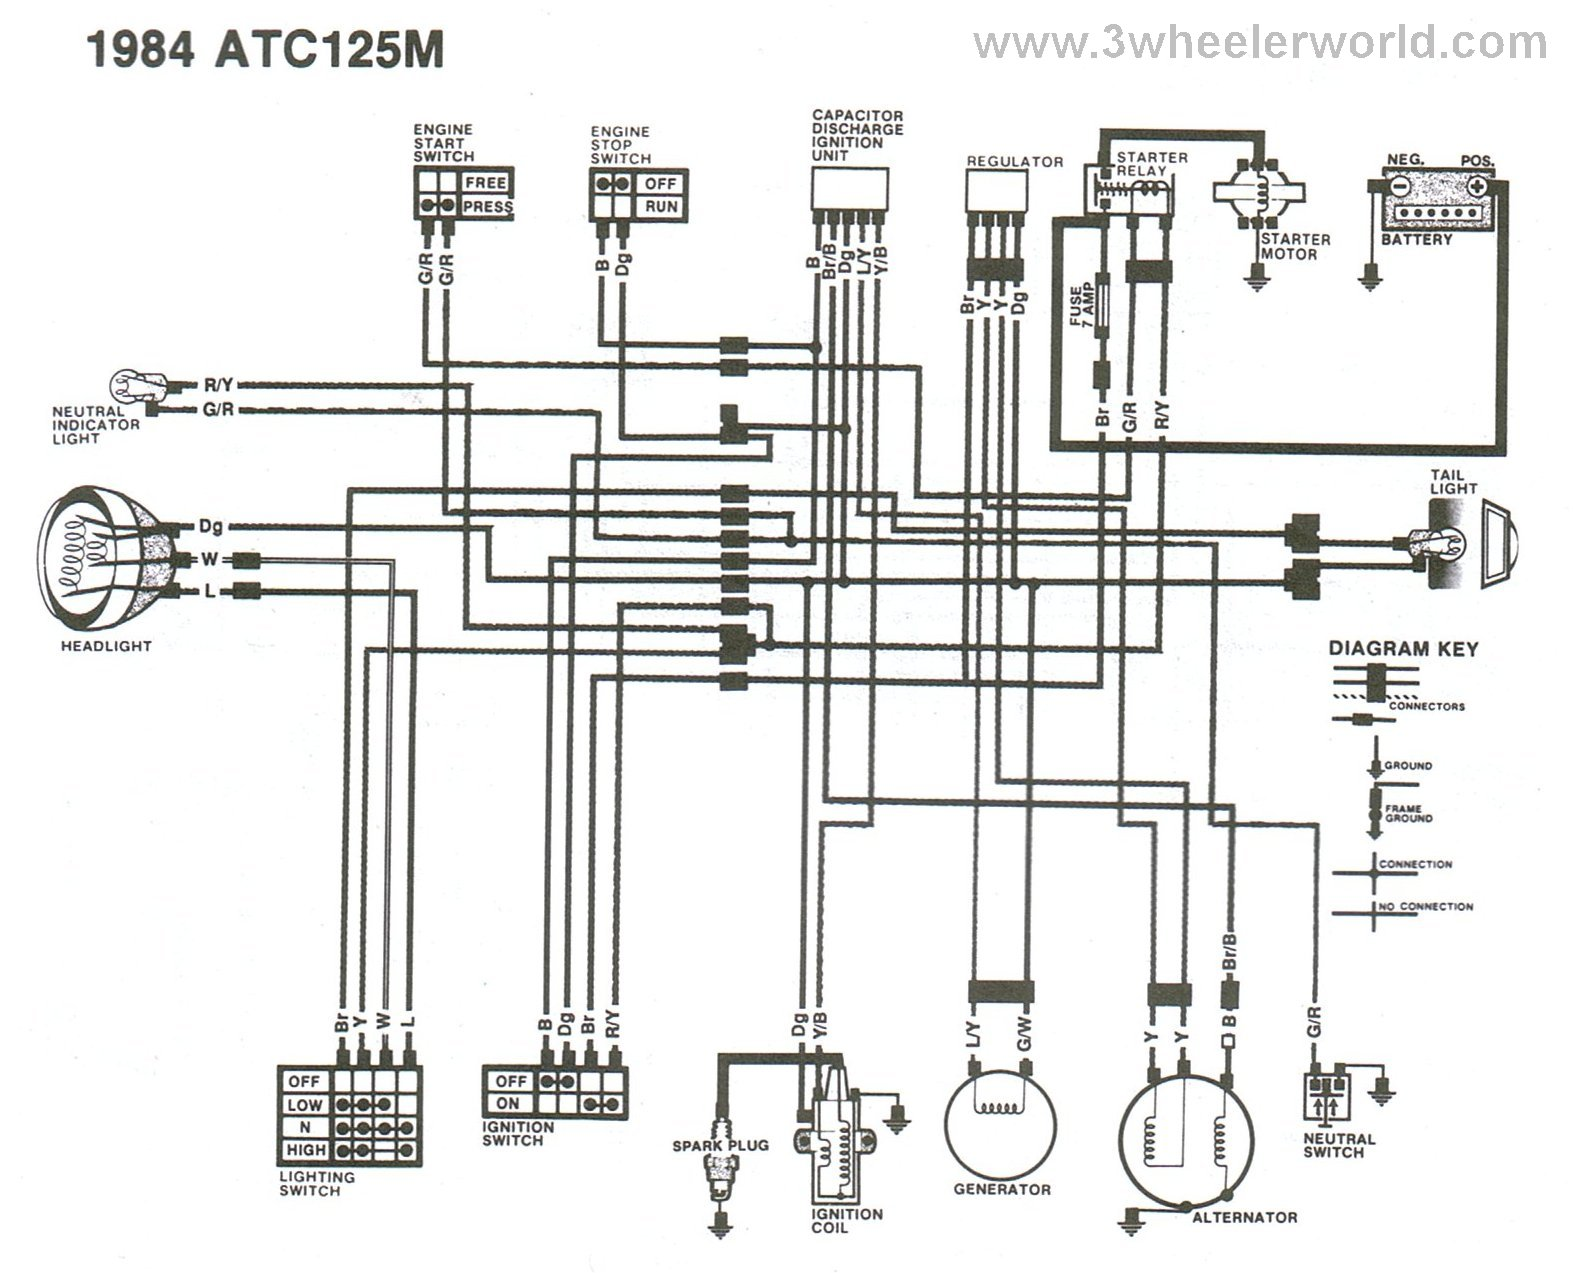 Honda Atc Wiring Diagram as well 86 Kawasaki Bayou Wiring likewise Honda Atc125m Wiring Diagram likewise Polaris Scrambler 90 Wiring Diagram moreover 194 125M. on atc 125m wiring diagram